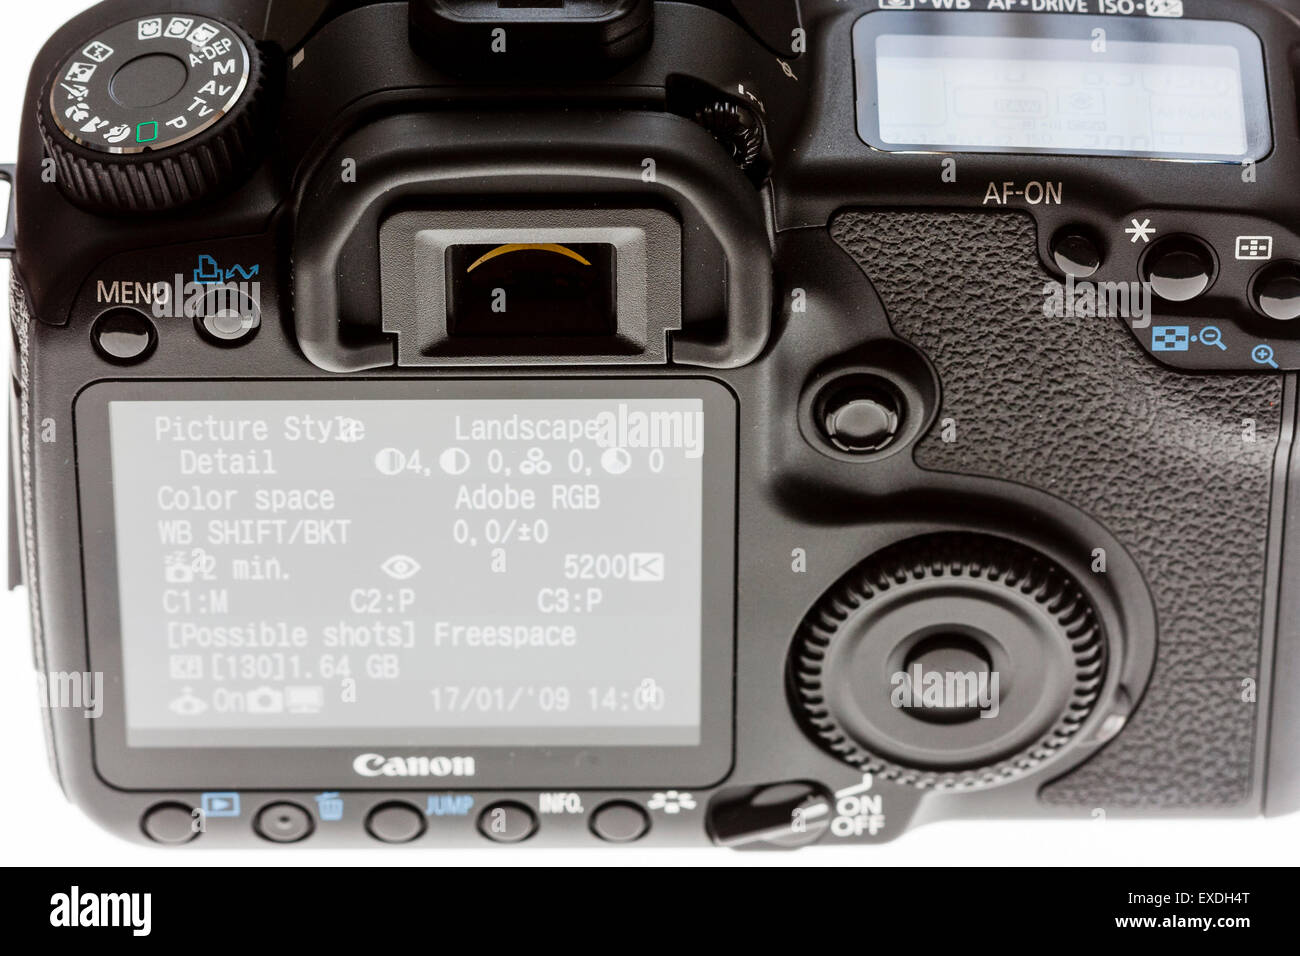 Back of Single lens reflex digital Canon Camera, EOS 40d, with menu on back screen displayed - Stock Image